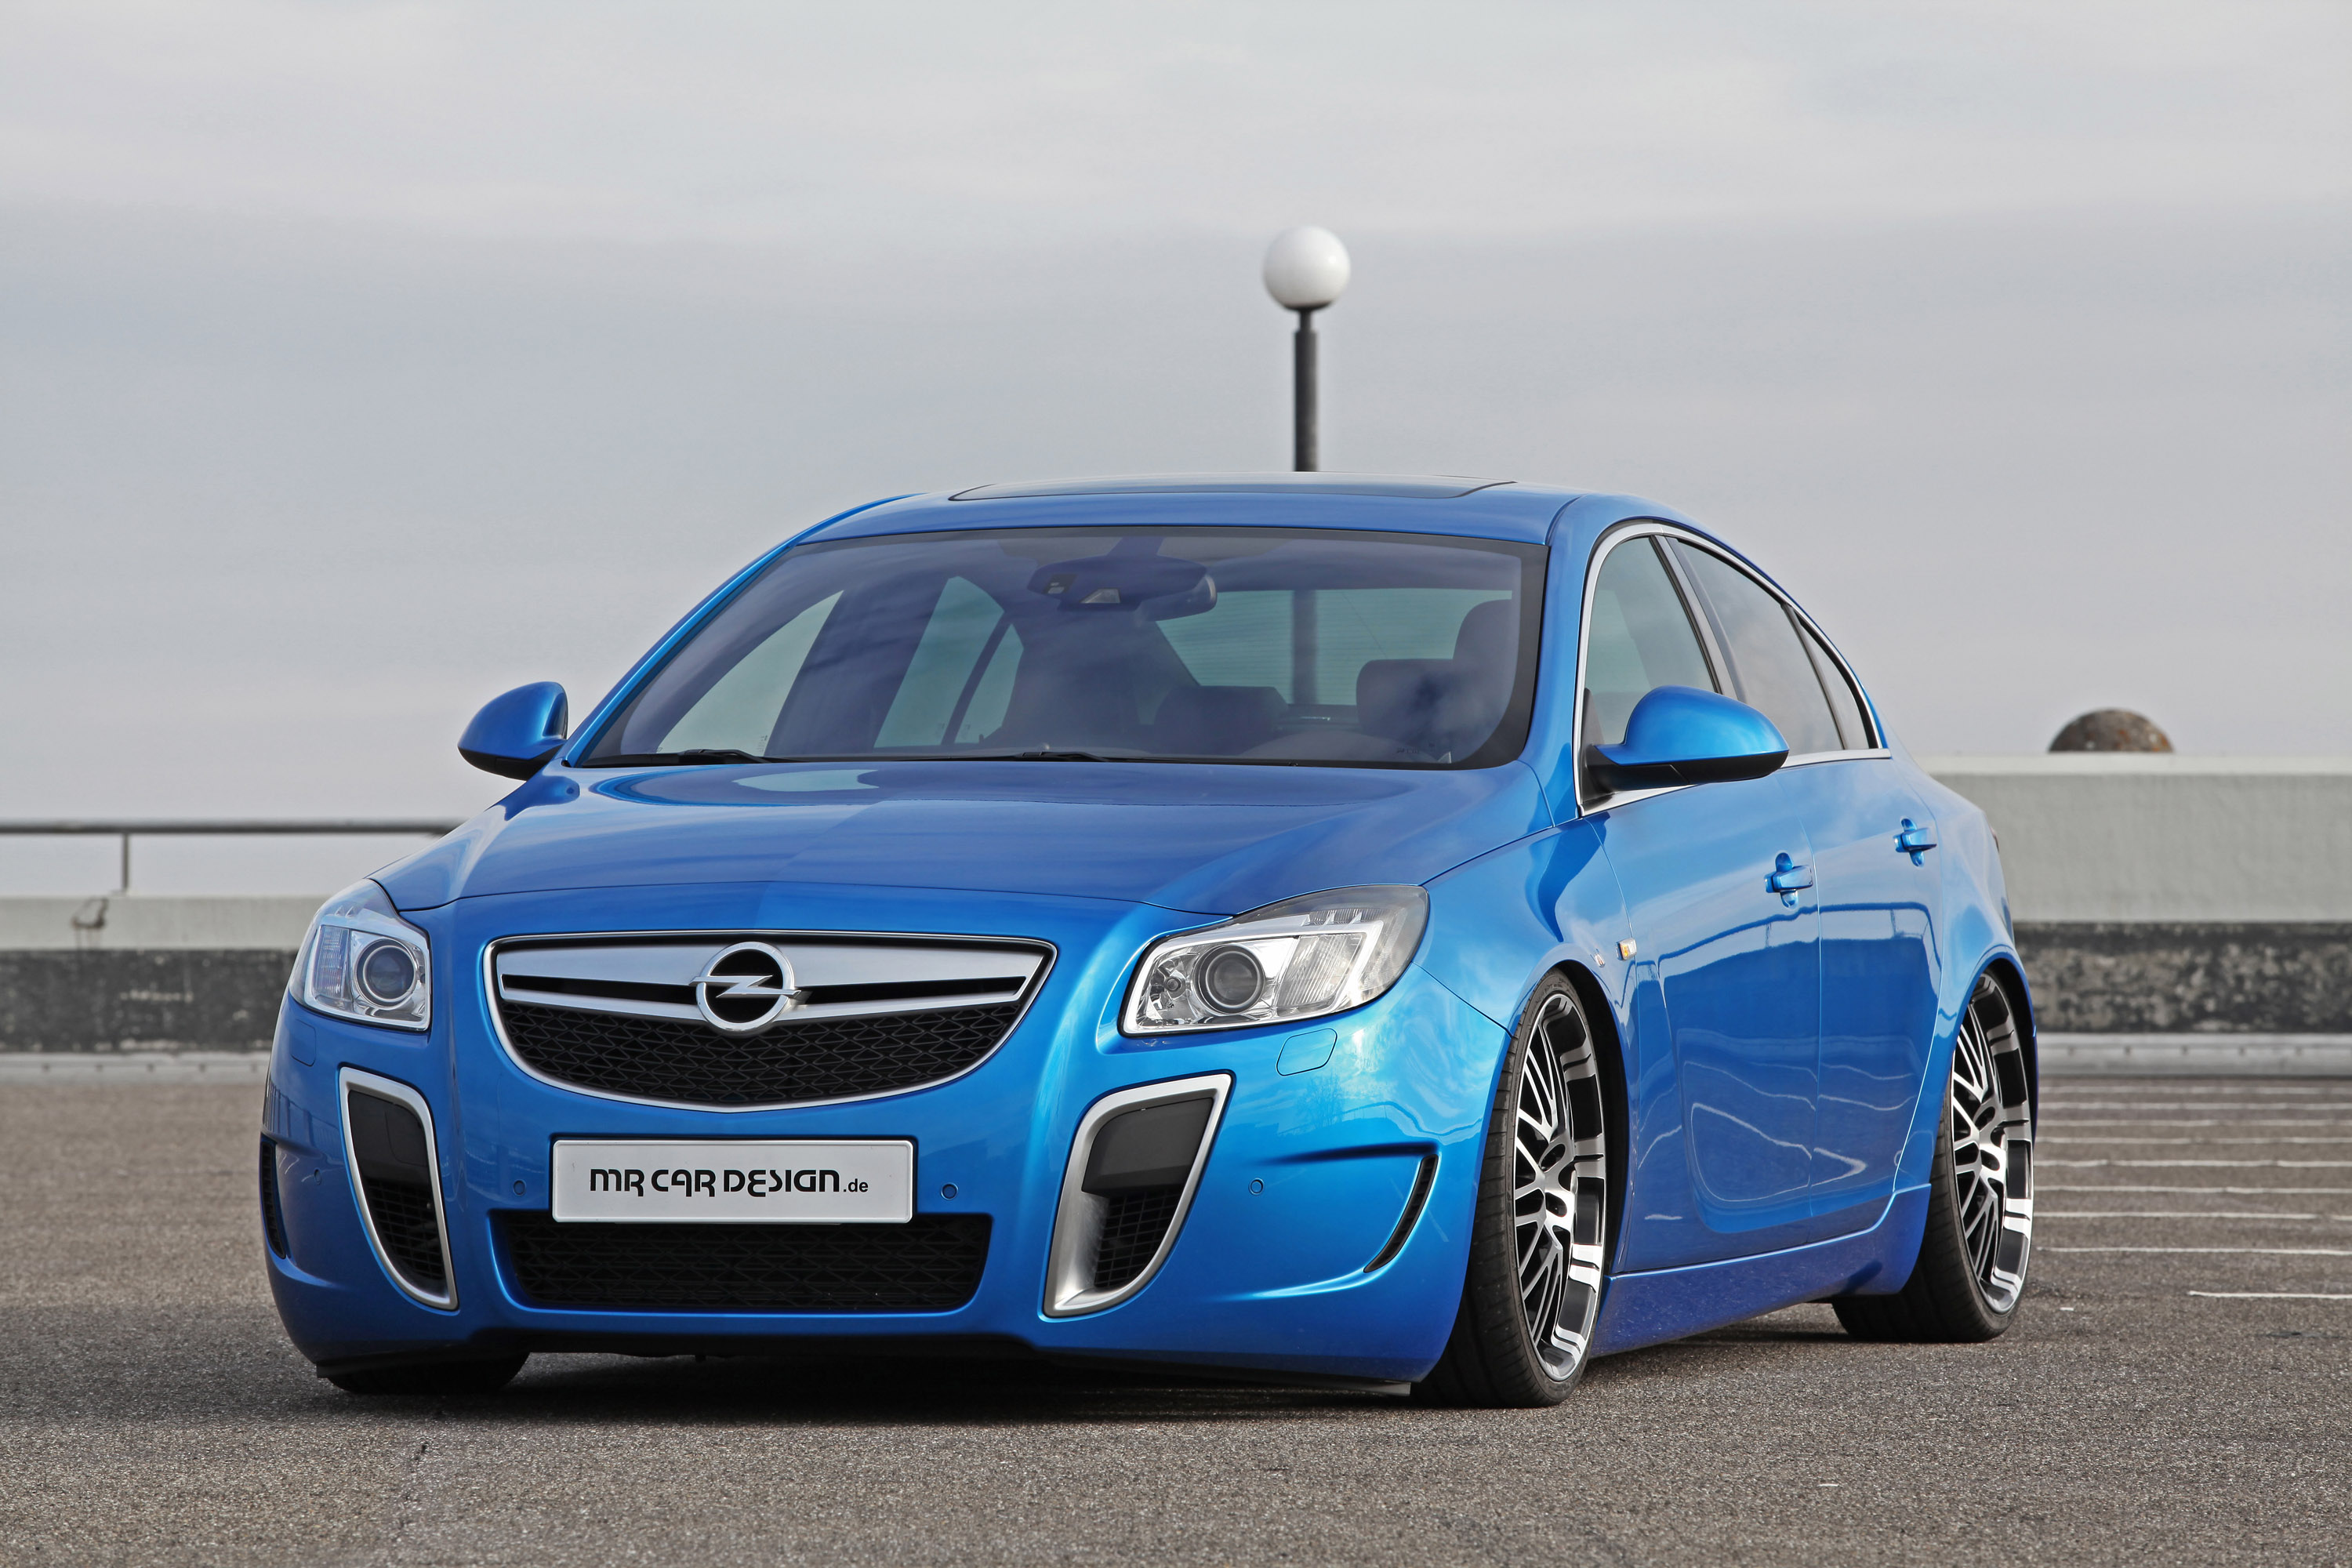 2015 Opel Insignia Hatchback new - Cars HD Wallpapers For Free